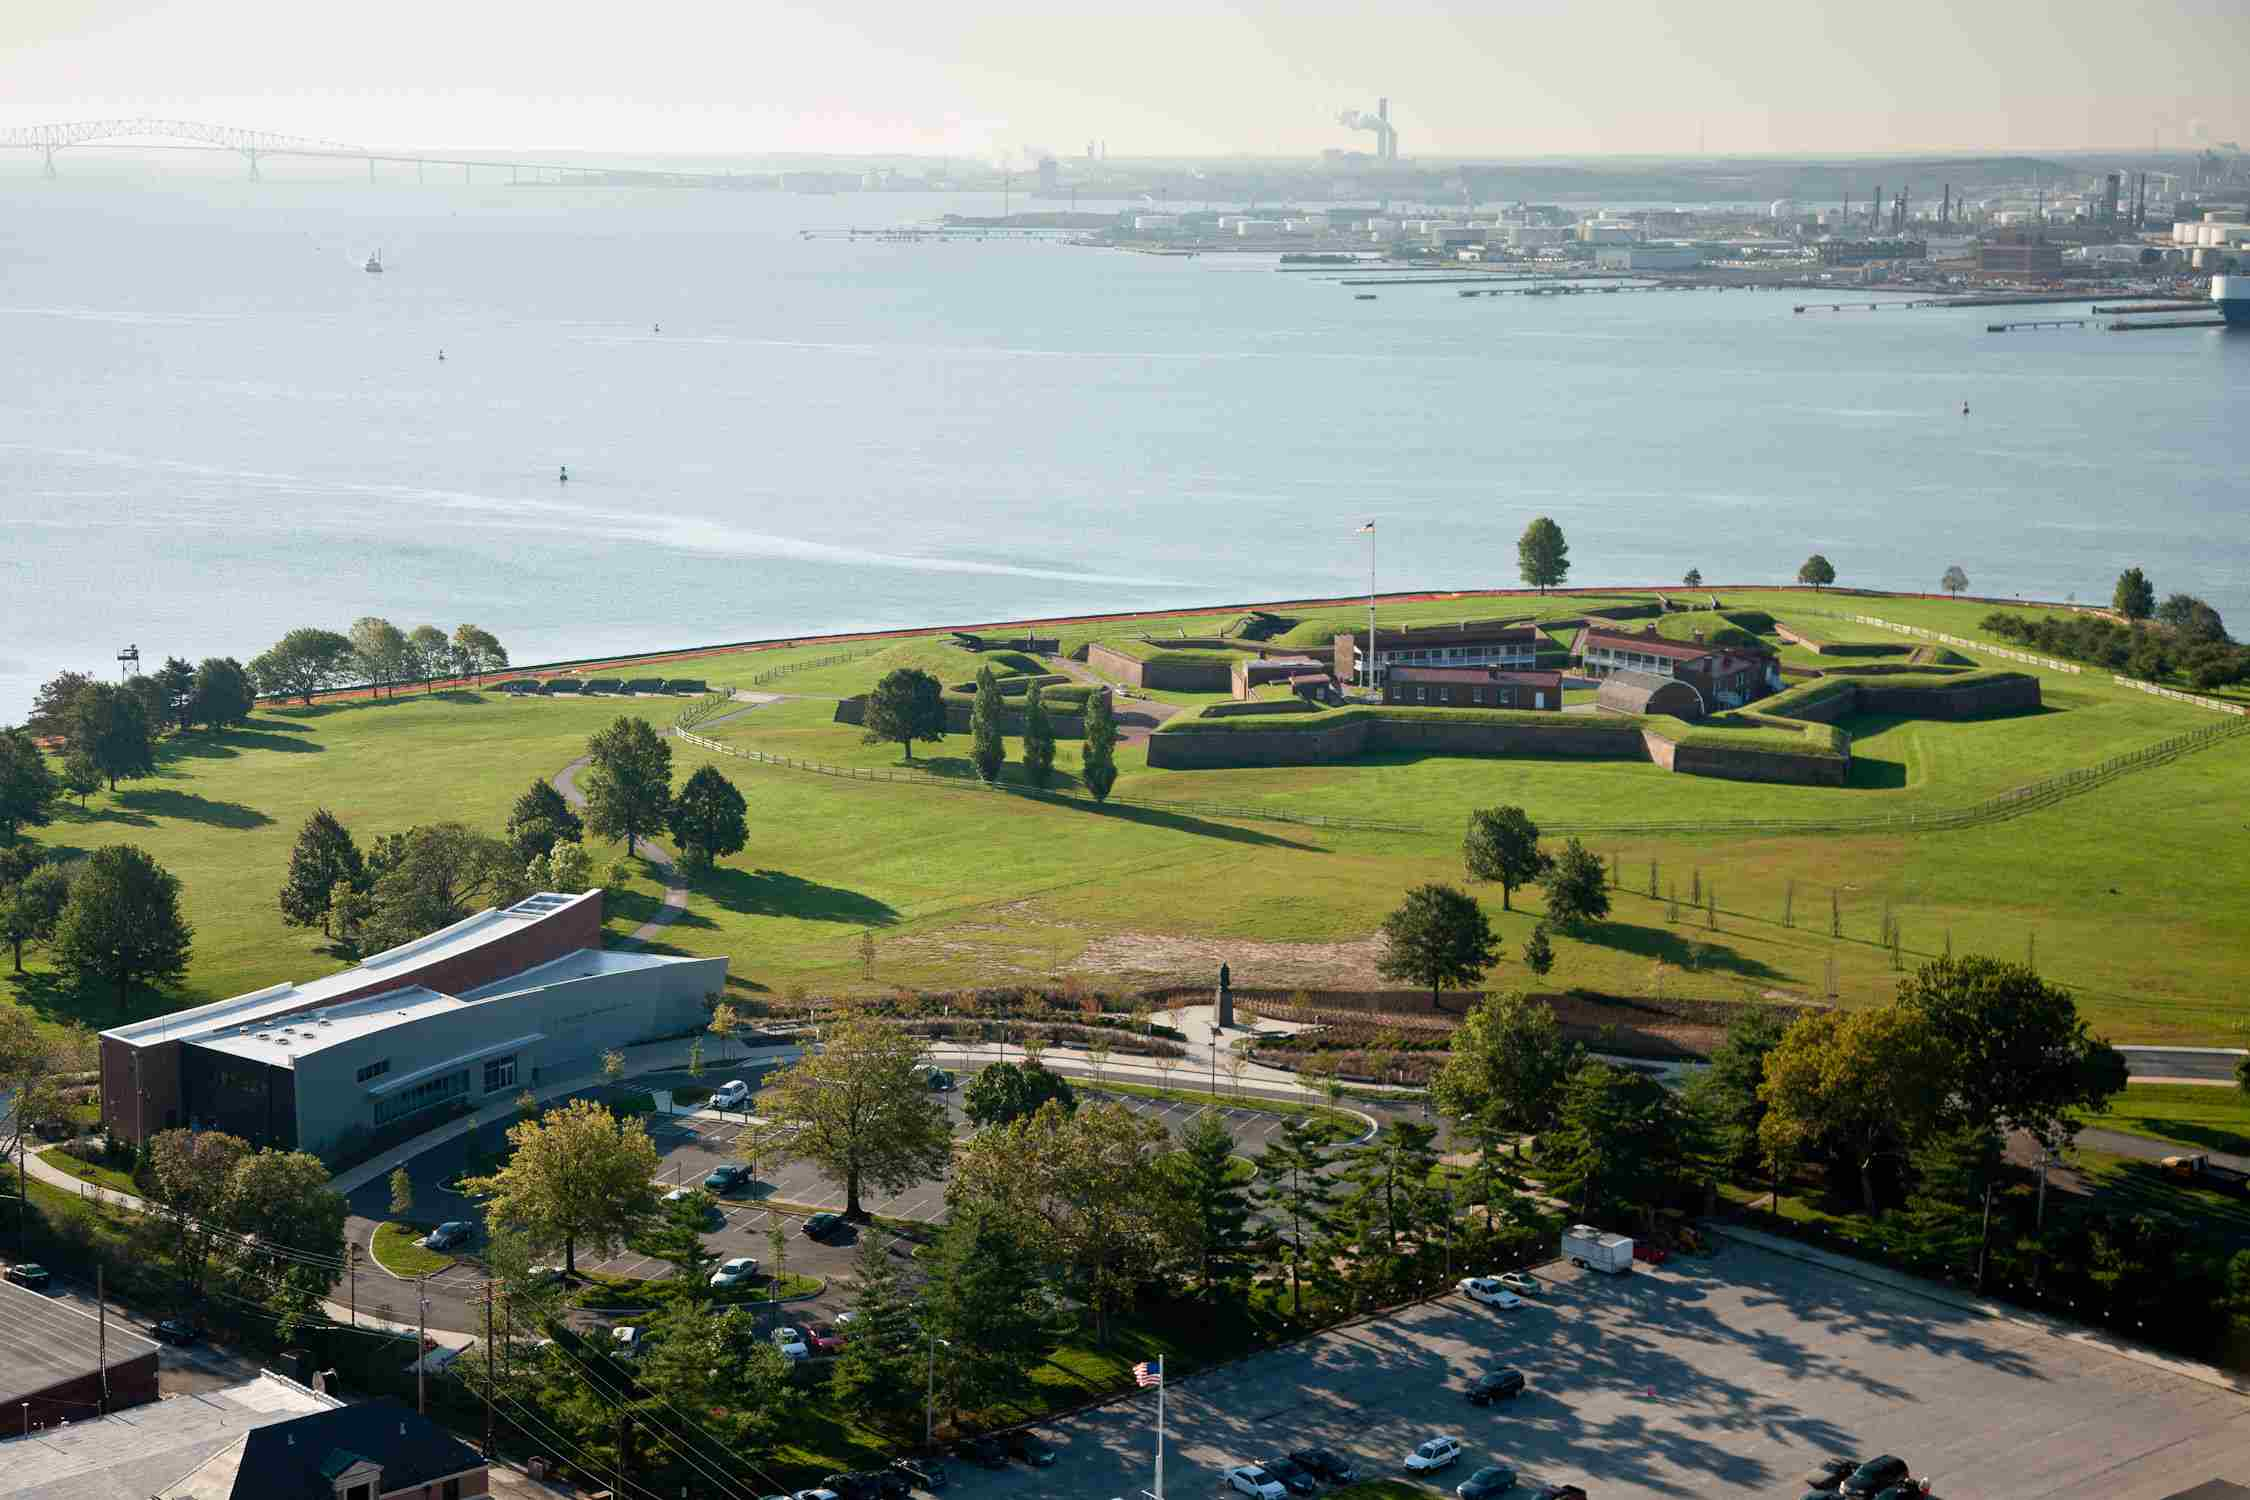 A modern aerial view of Fort McHenry